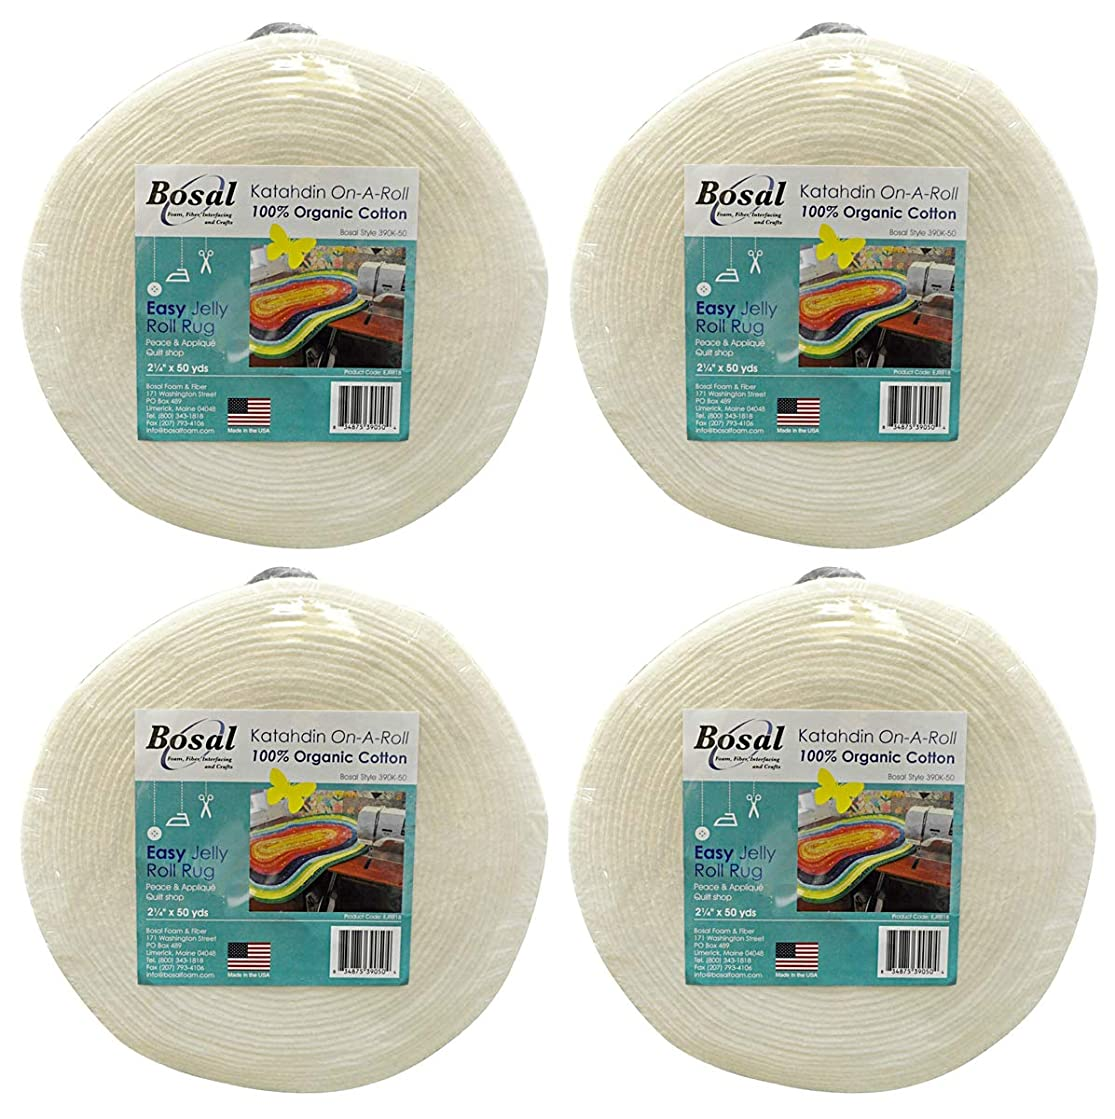 Bosal Katahdin On-A-Roll Organic Cotton Batting 2-1/4 inches by 50 Yards, 4 Pack